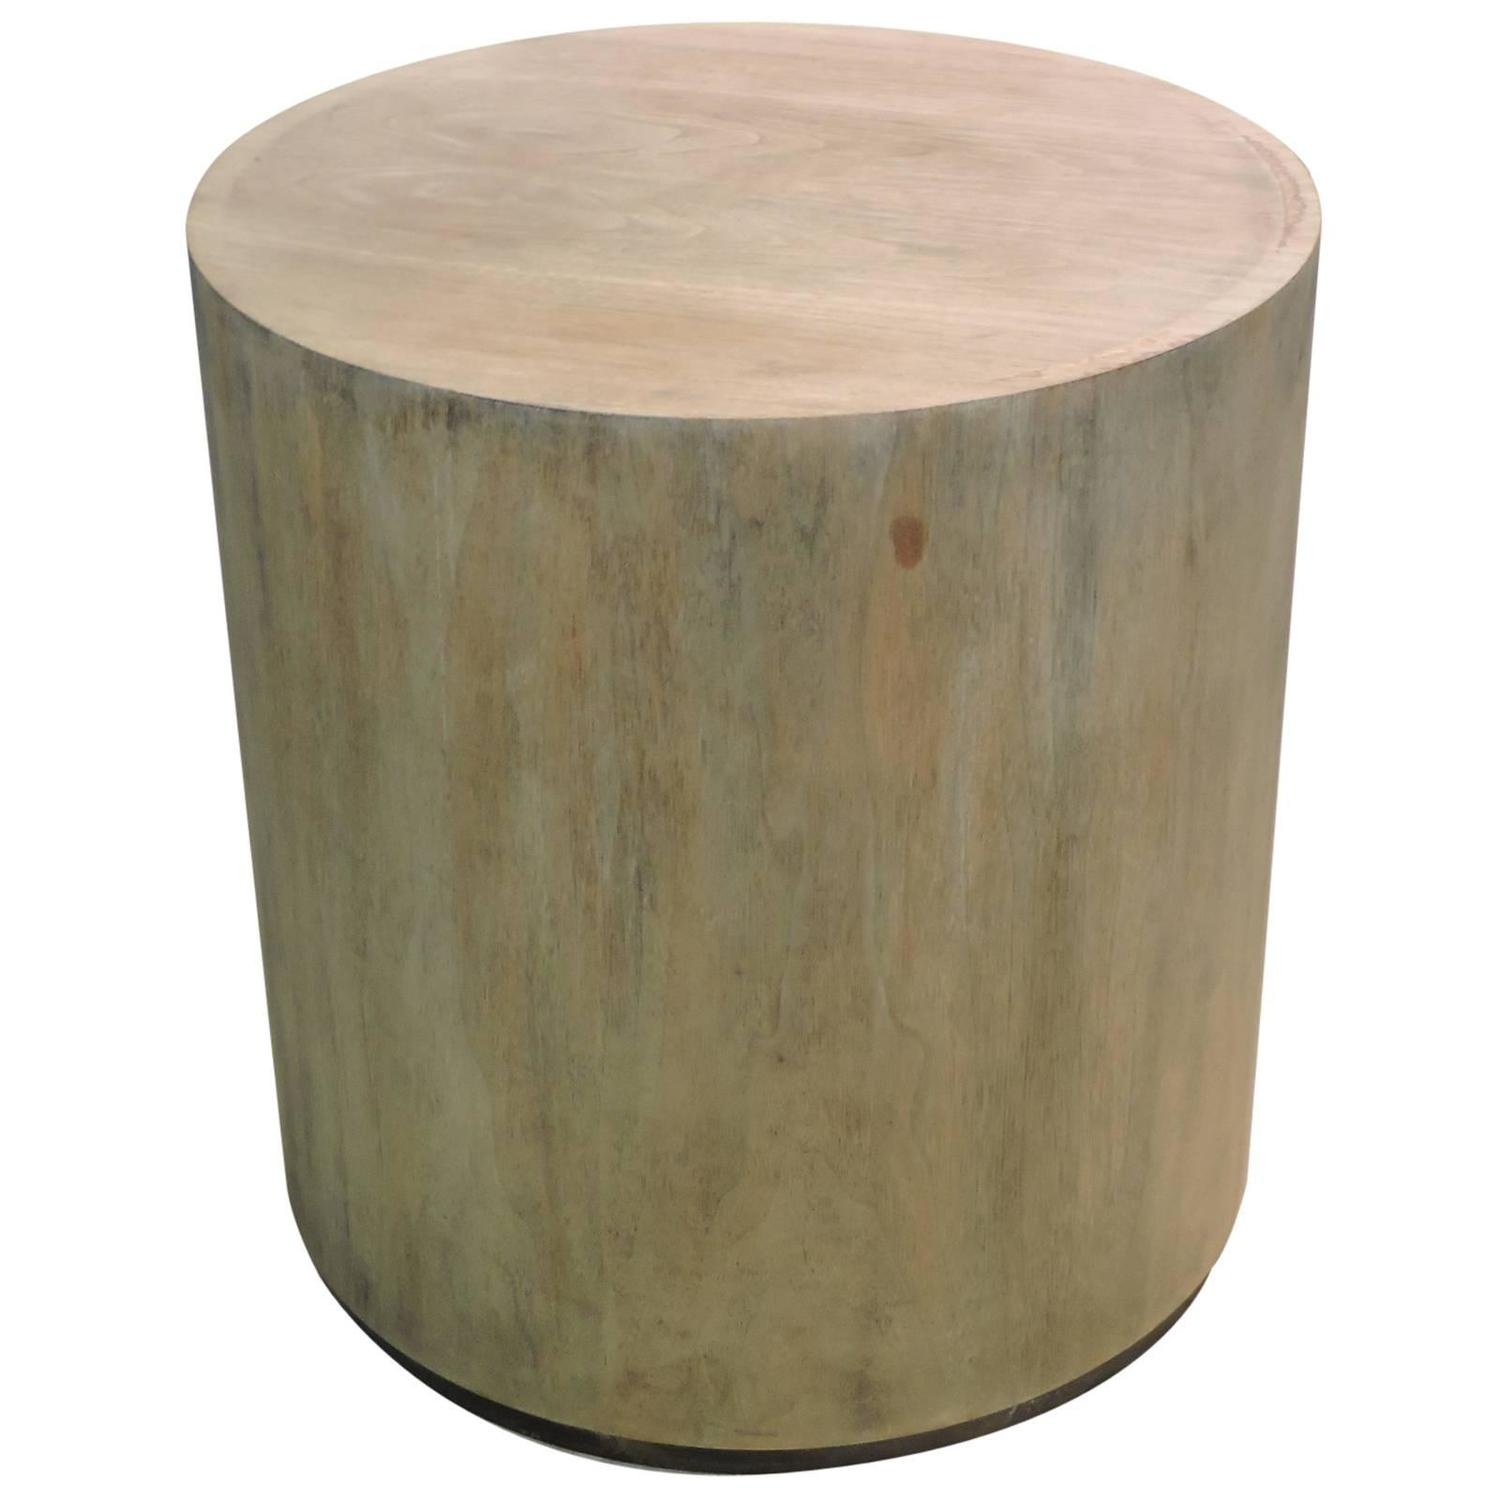 Bleached Parchment Finish Wood Cylinder Pedestal Table For Sale At 1stdibs